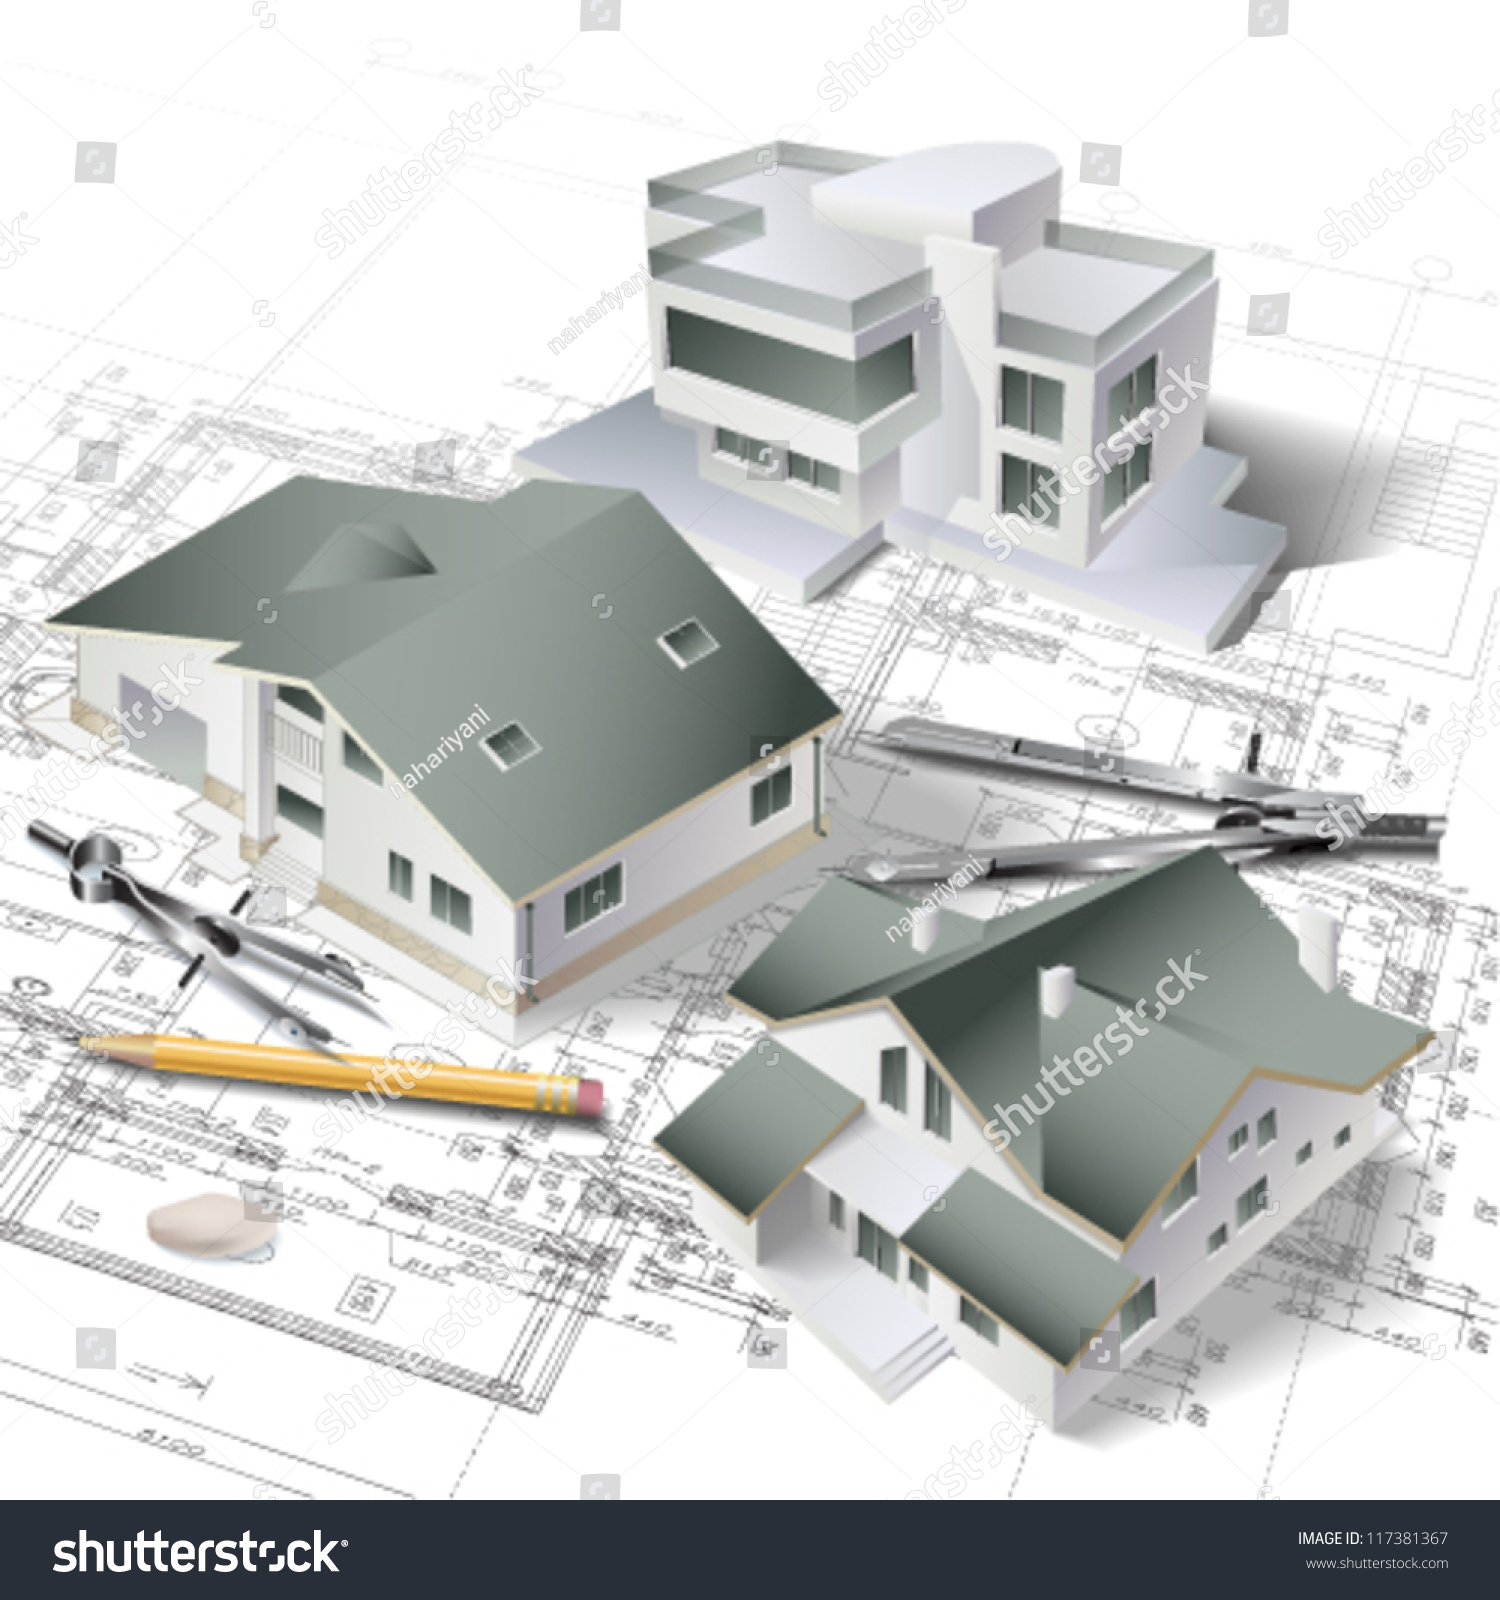 Architectural background 3d building model part stock for Building project plan